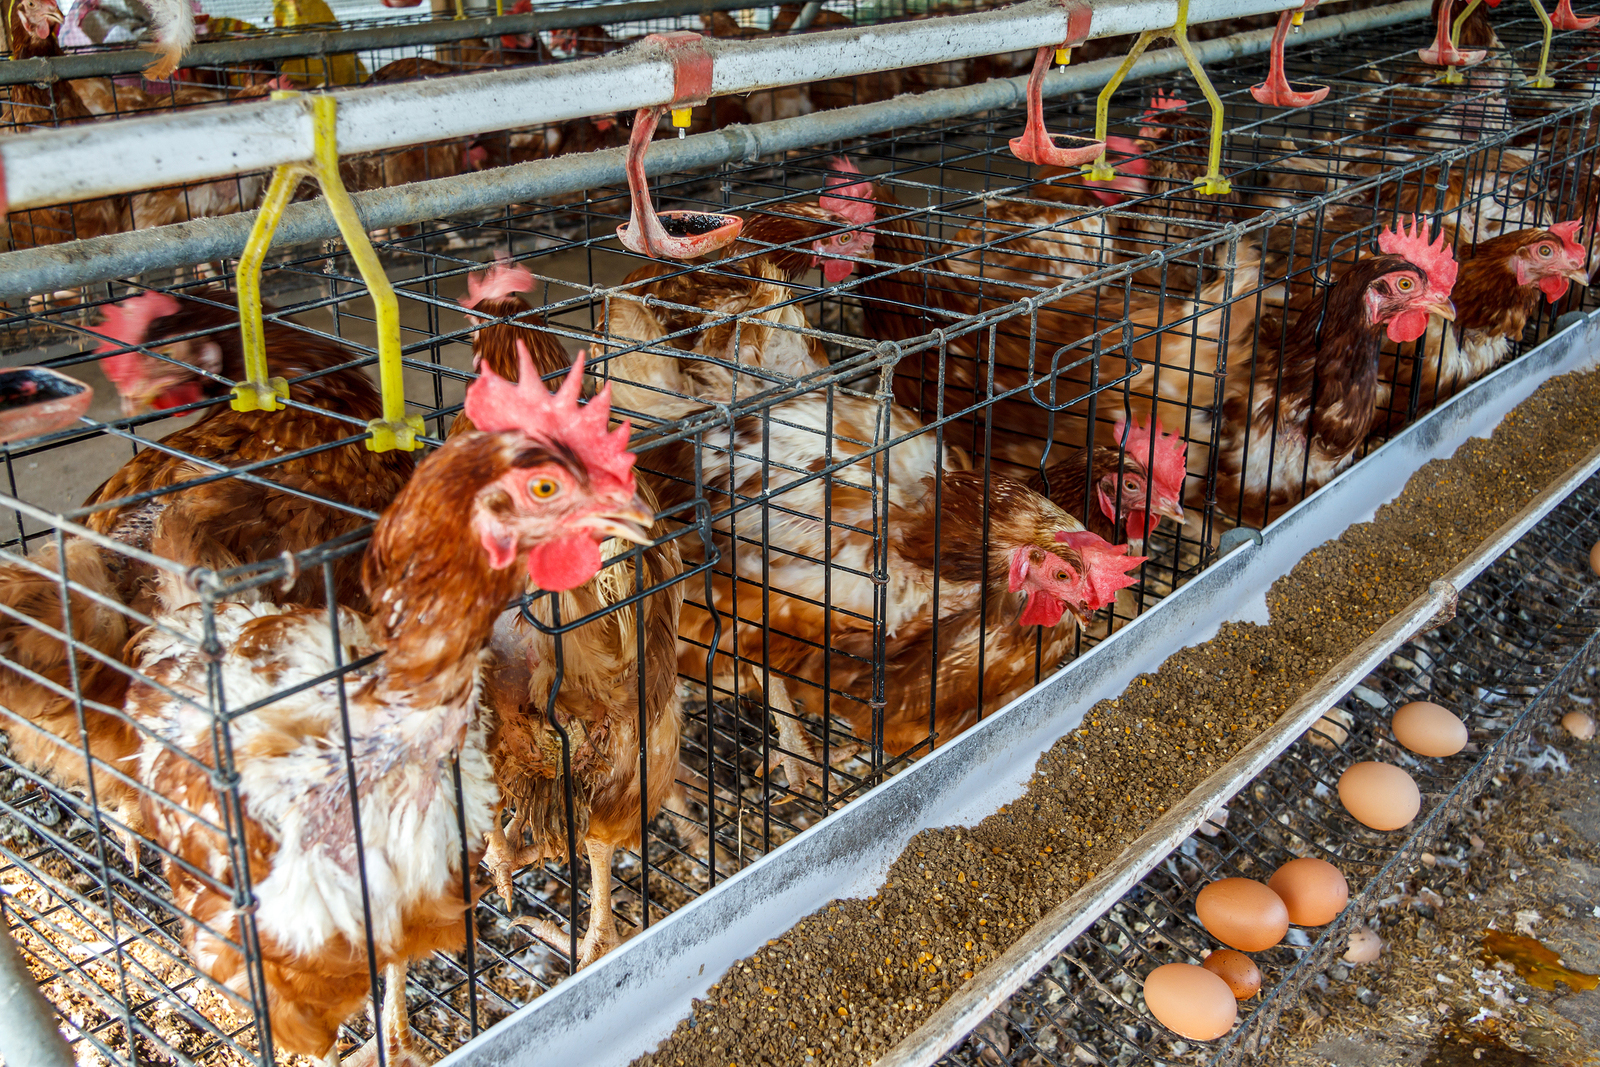 5-bigstock-Farm-Chicken-43746832.jpg